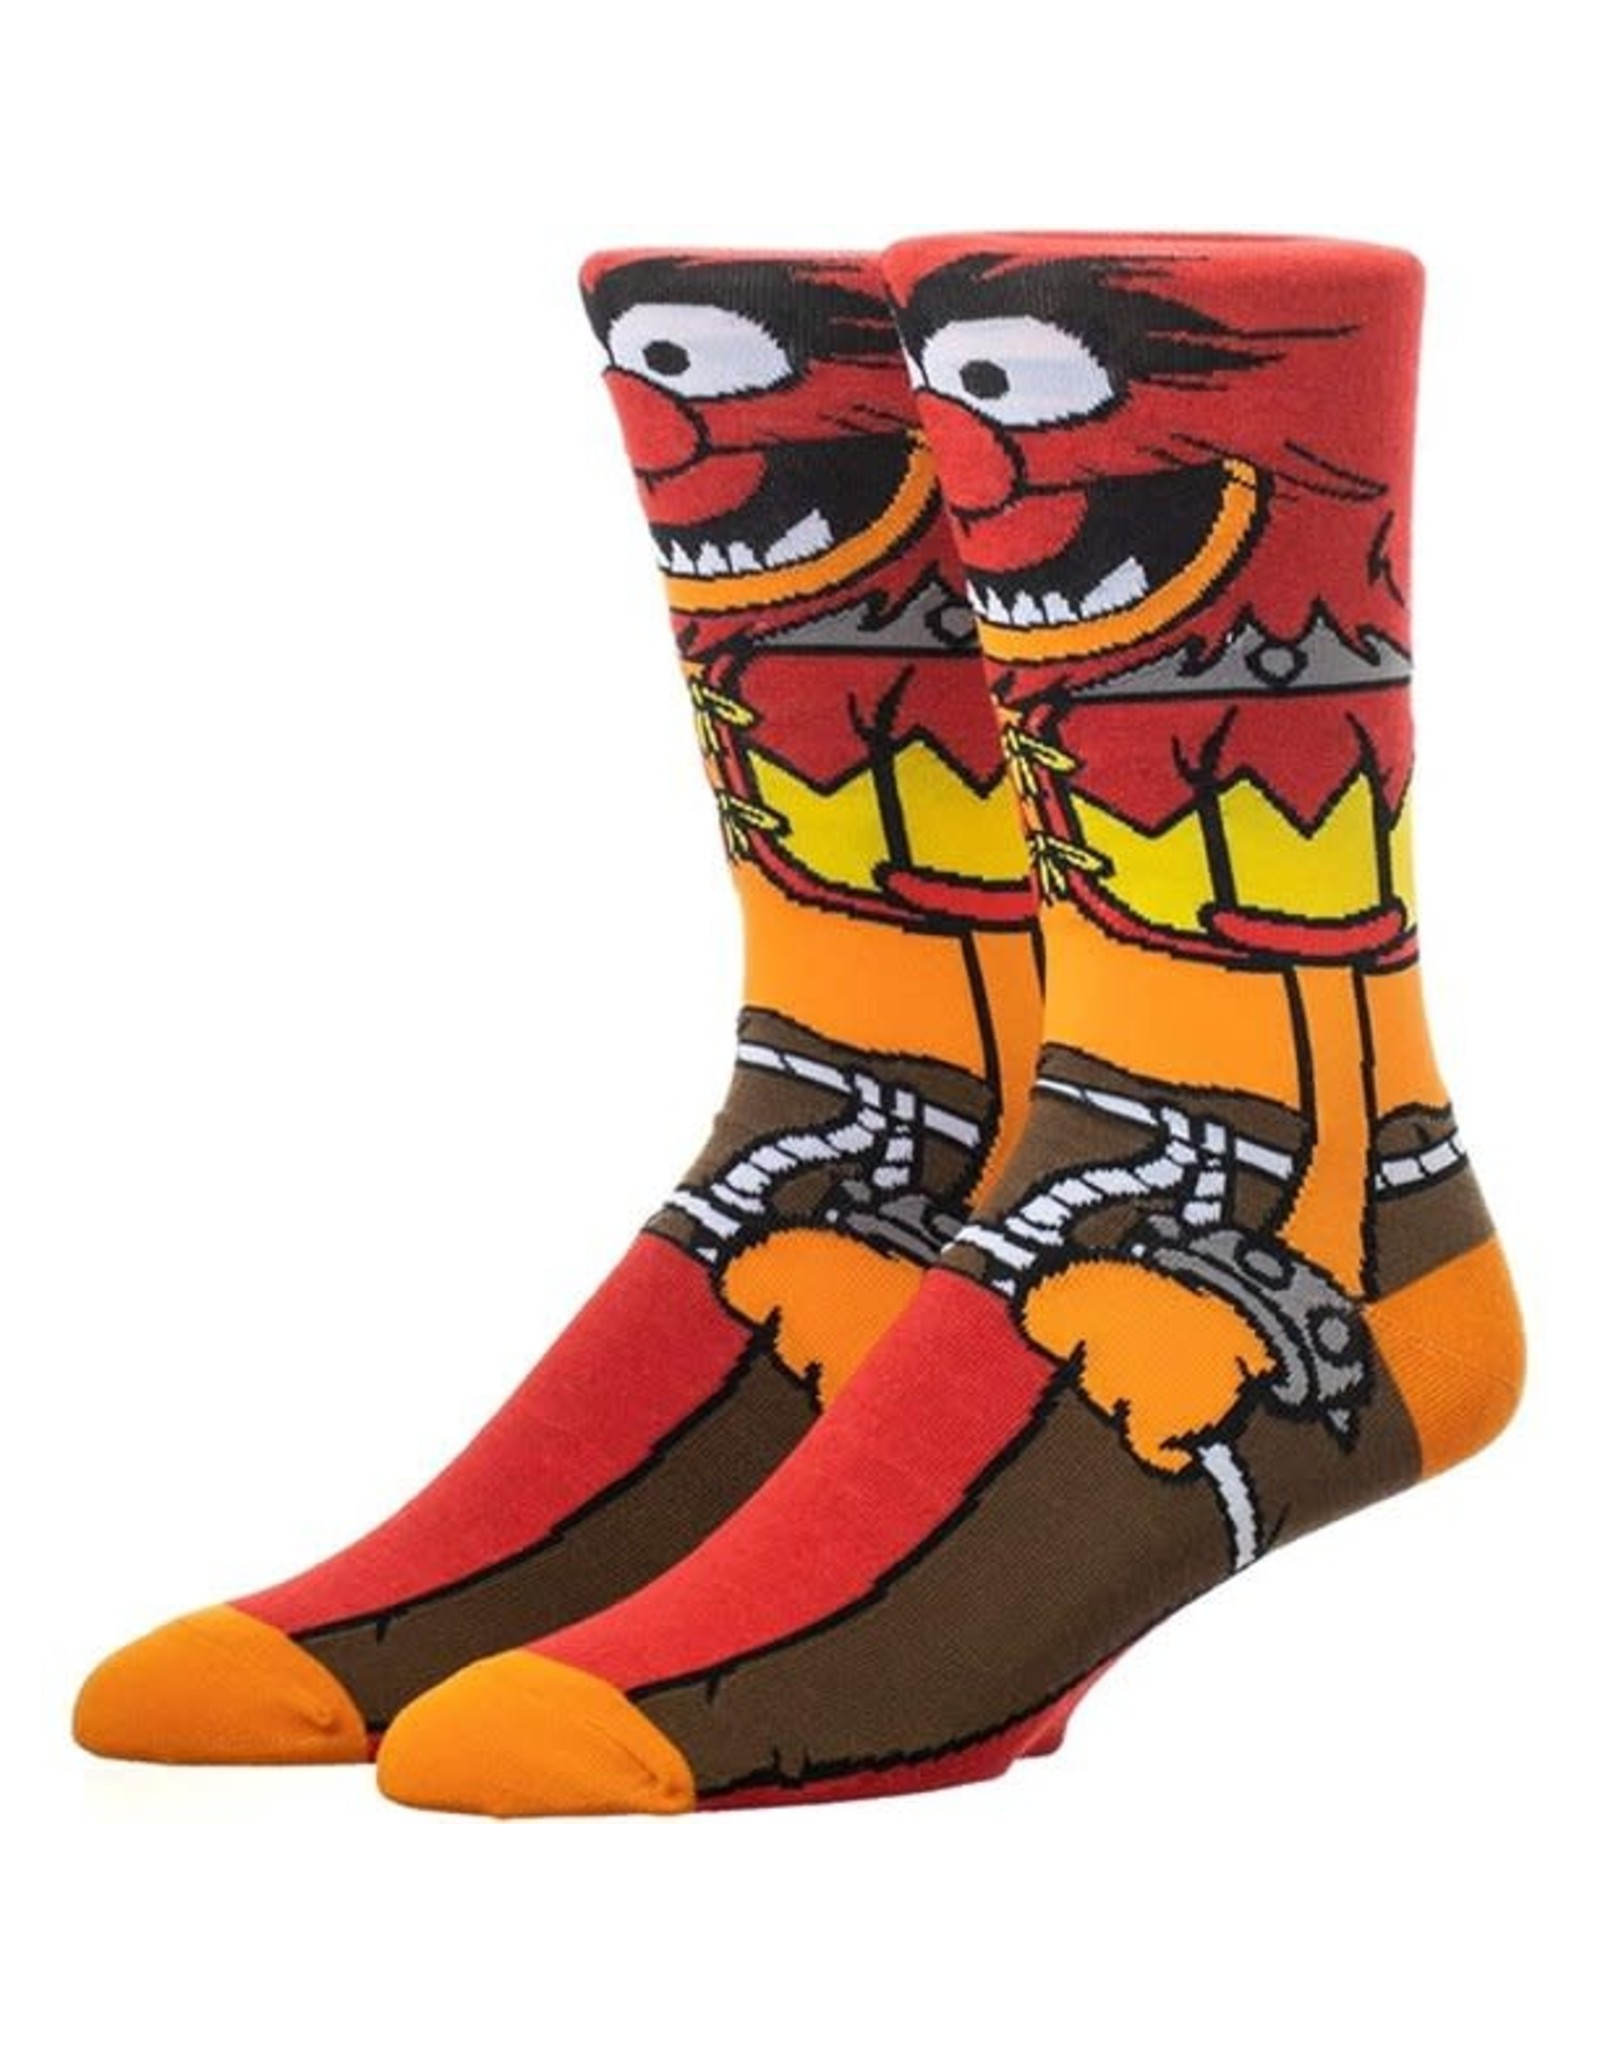 Socks (Mens) - Animal (The Muppets)